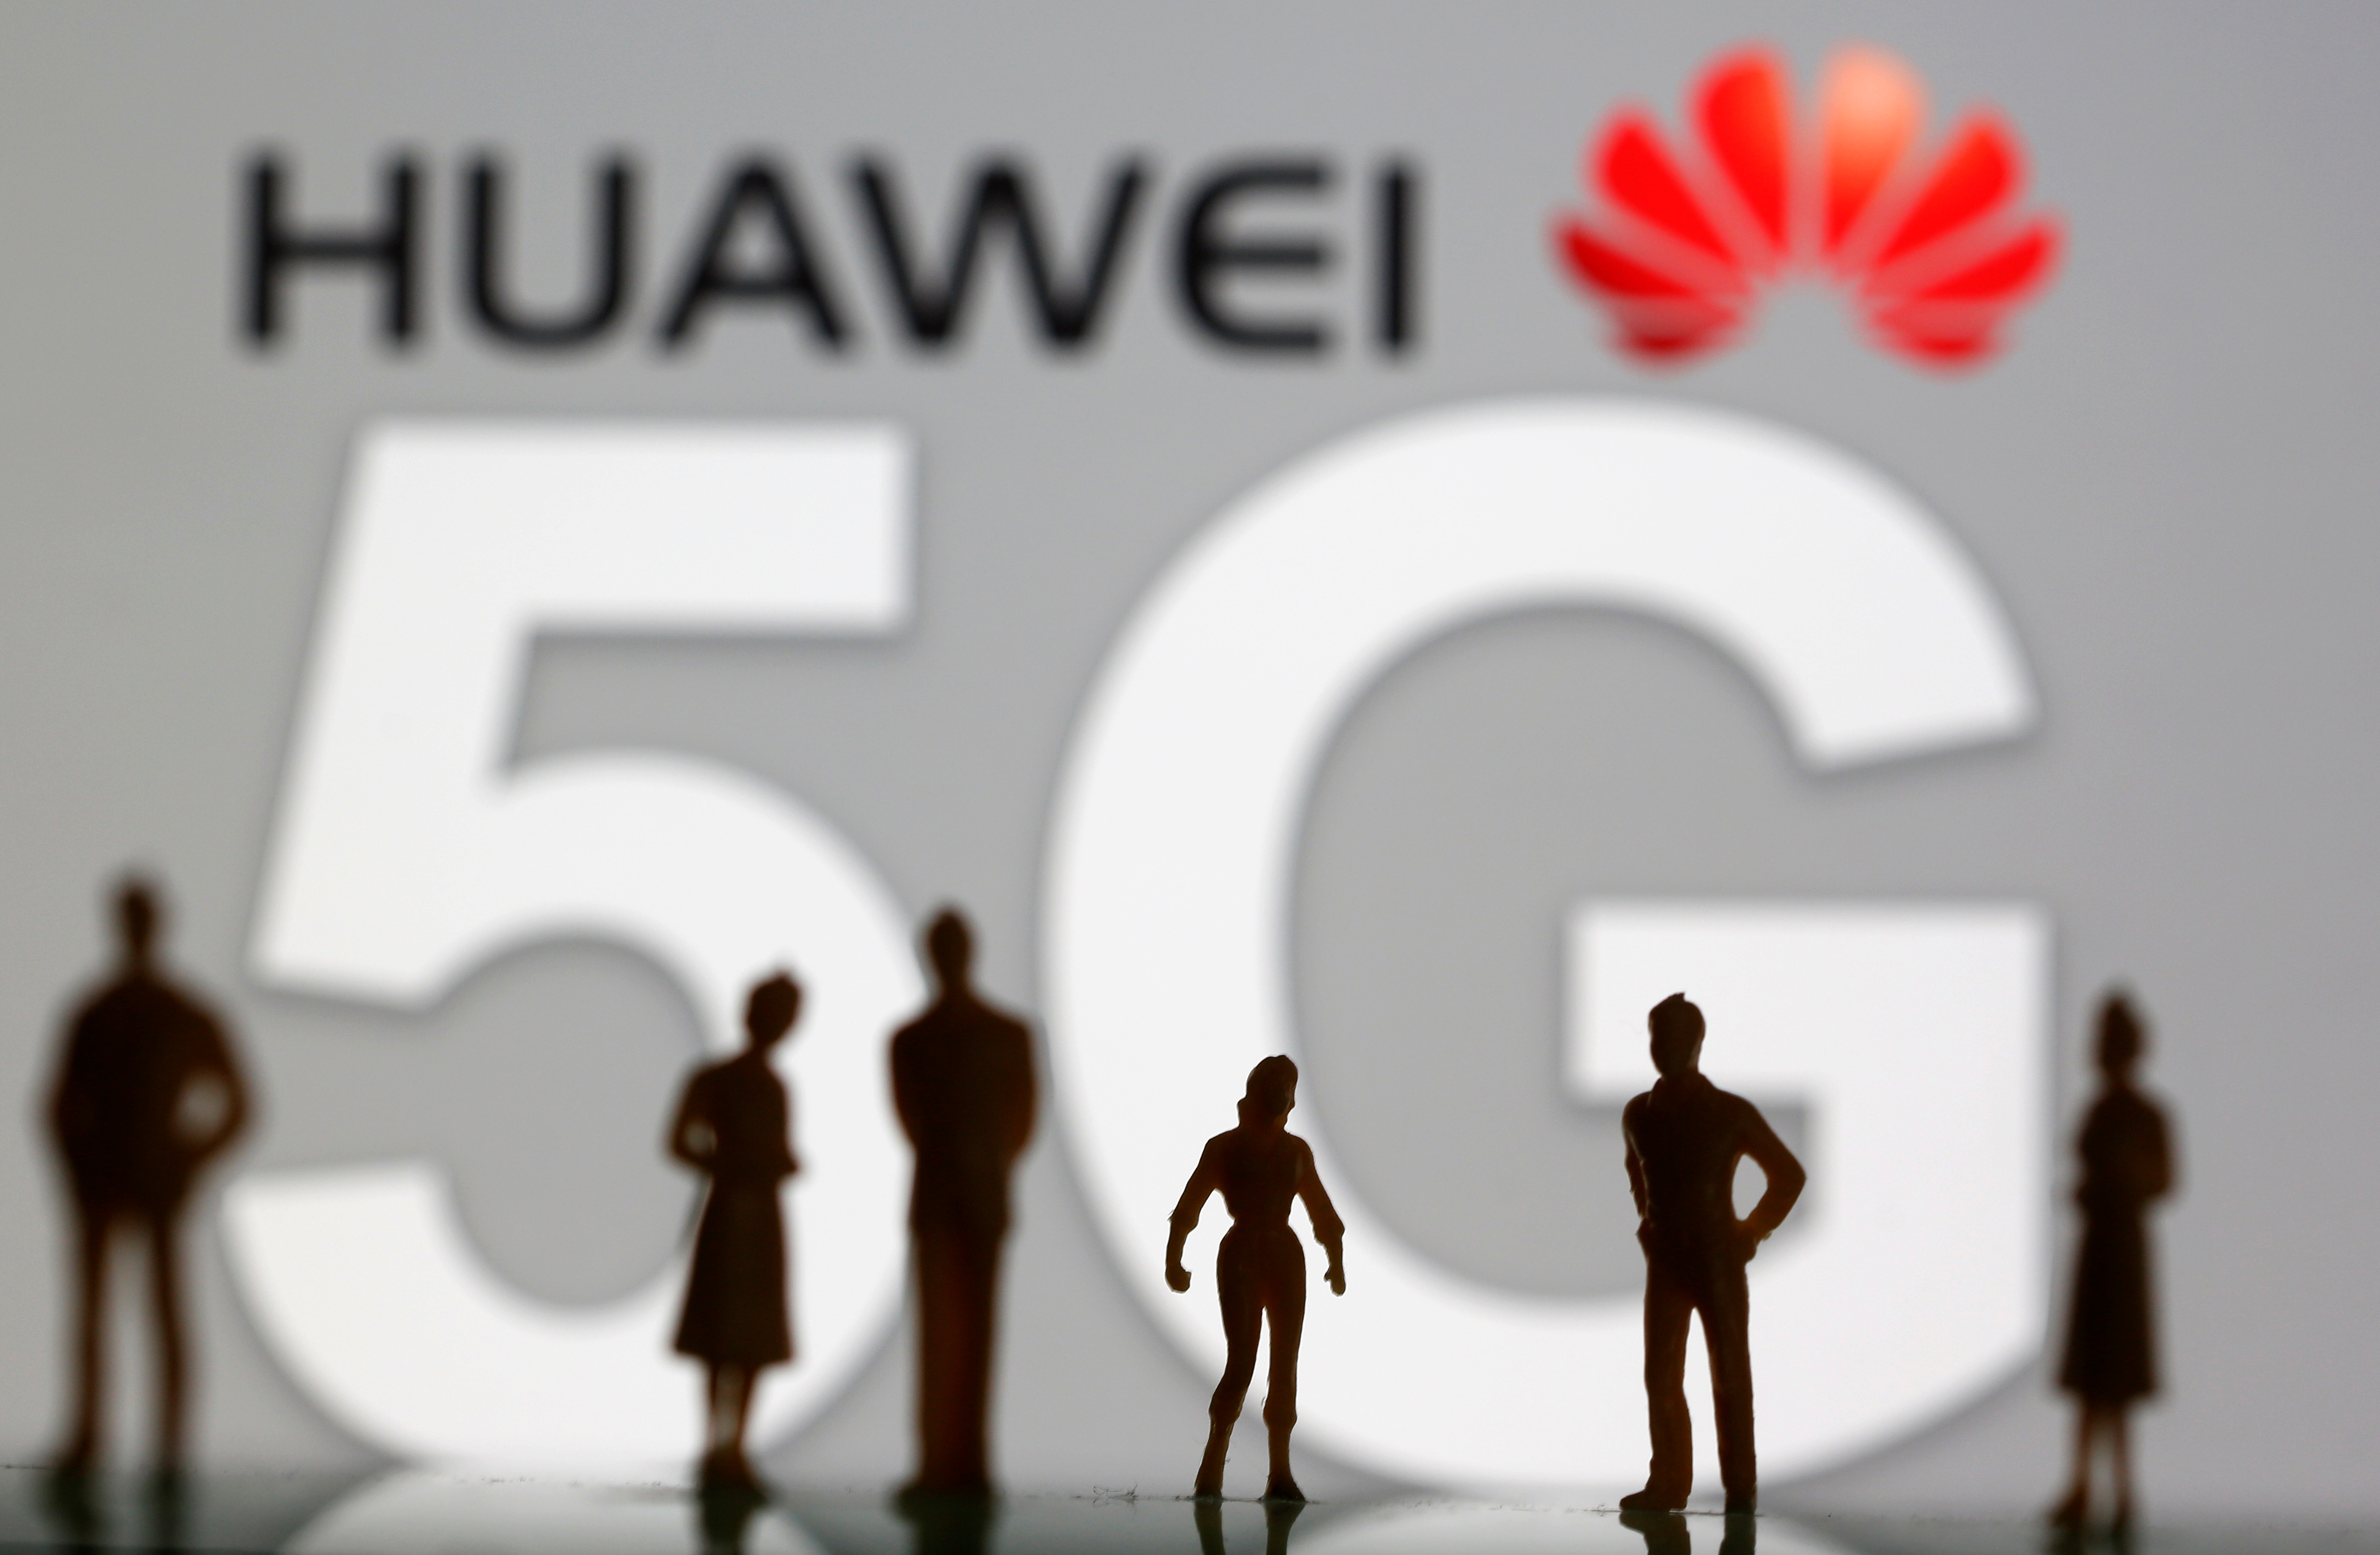 Small toy figures are seen in front of a displayed Huawei and 5G network logo in this illustration picture, March 30, 2019. REUTERS/Dado Ruvic/Illustration